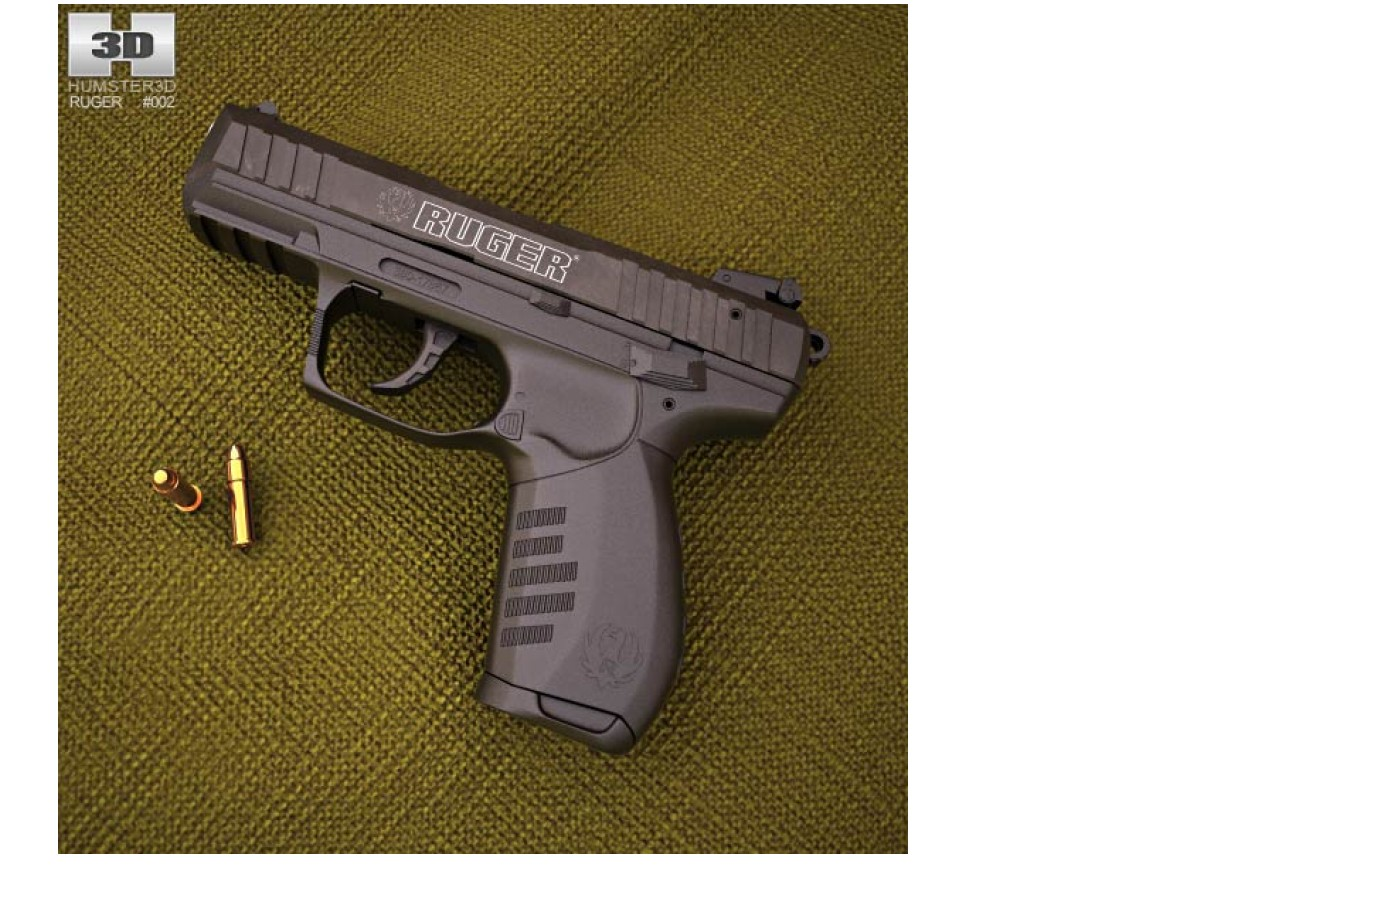 This handgun is small and lightweight.